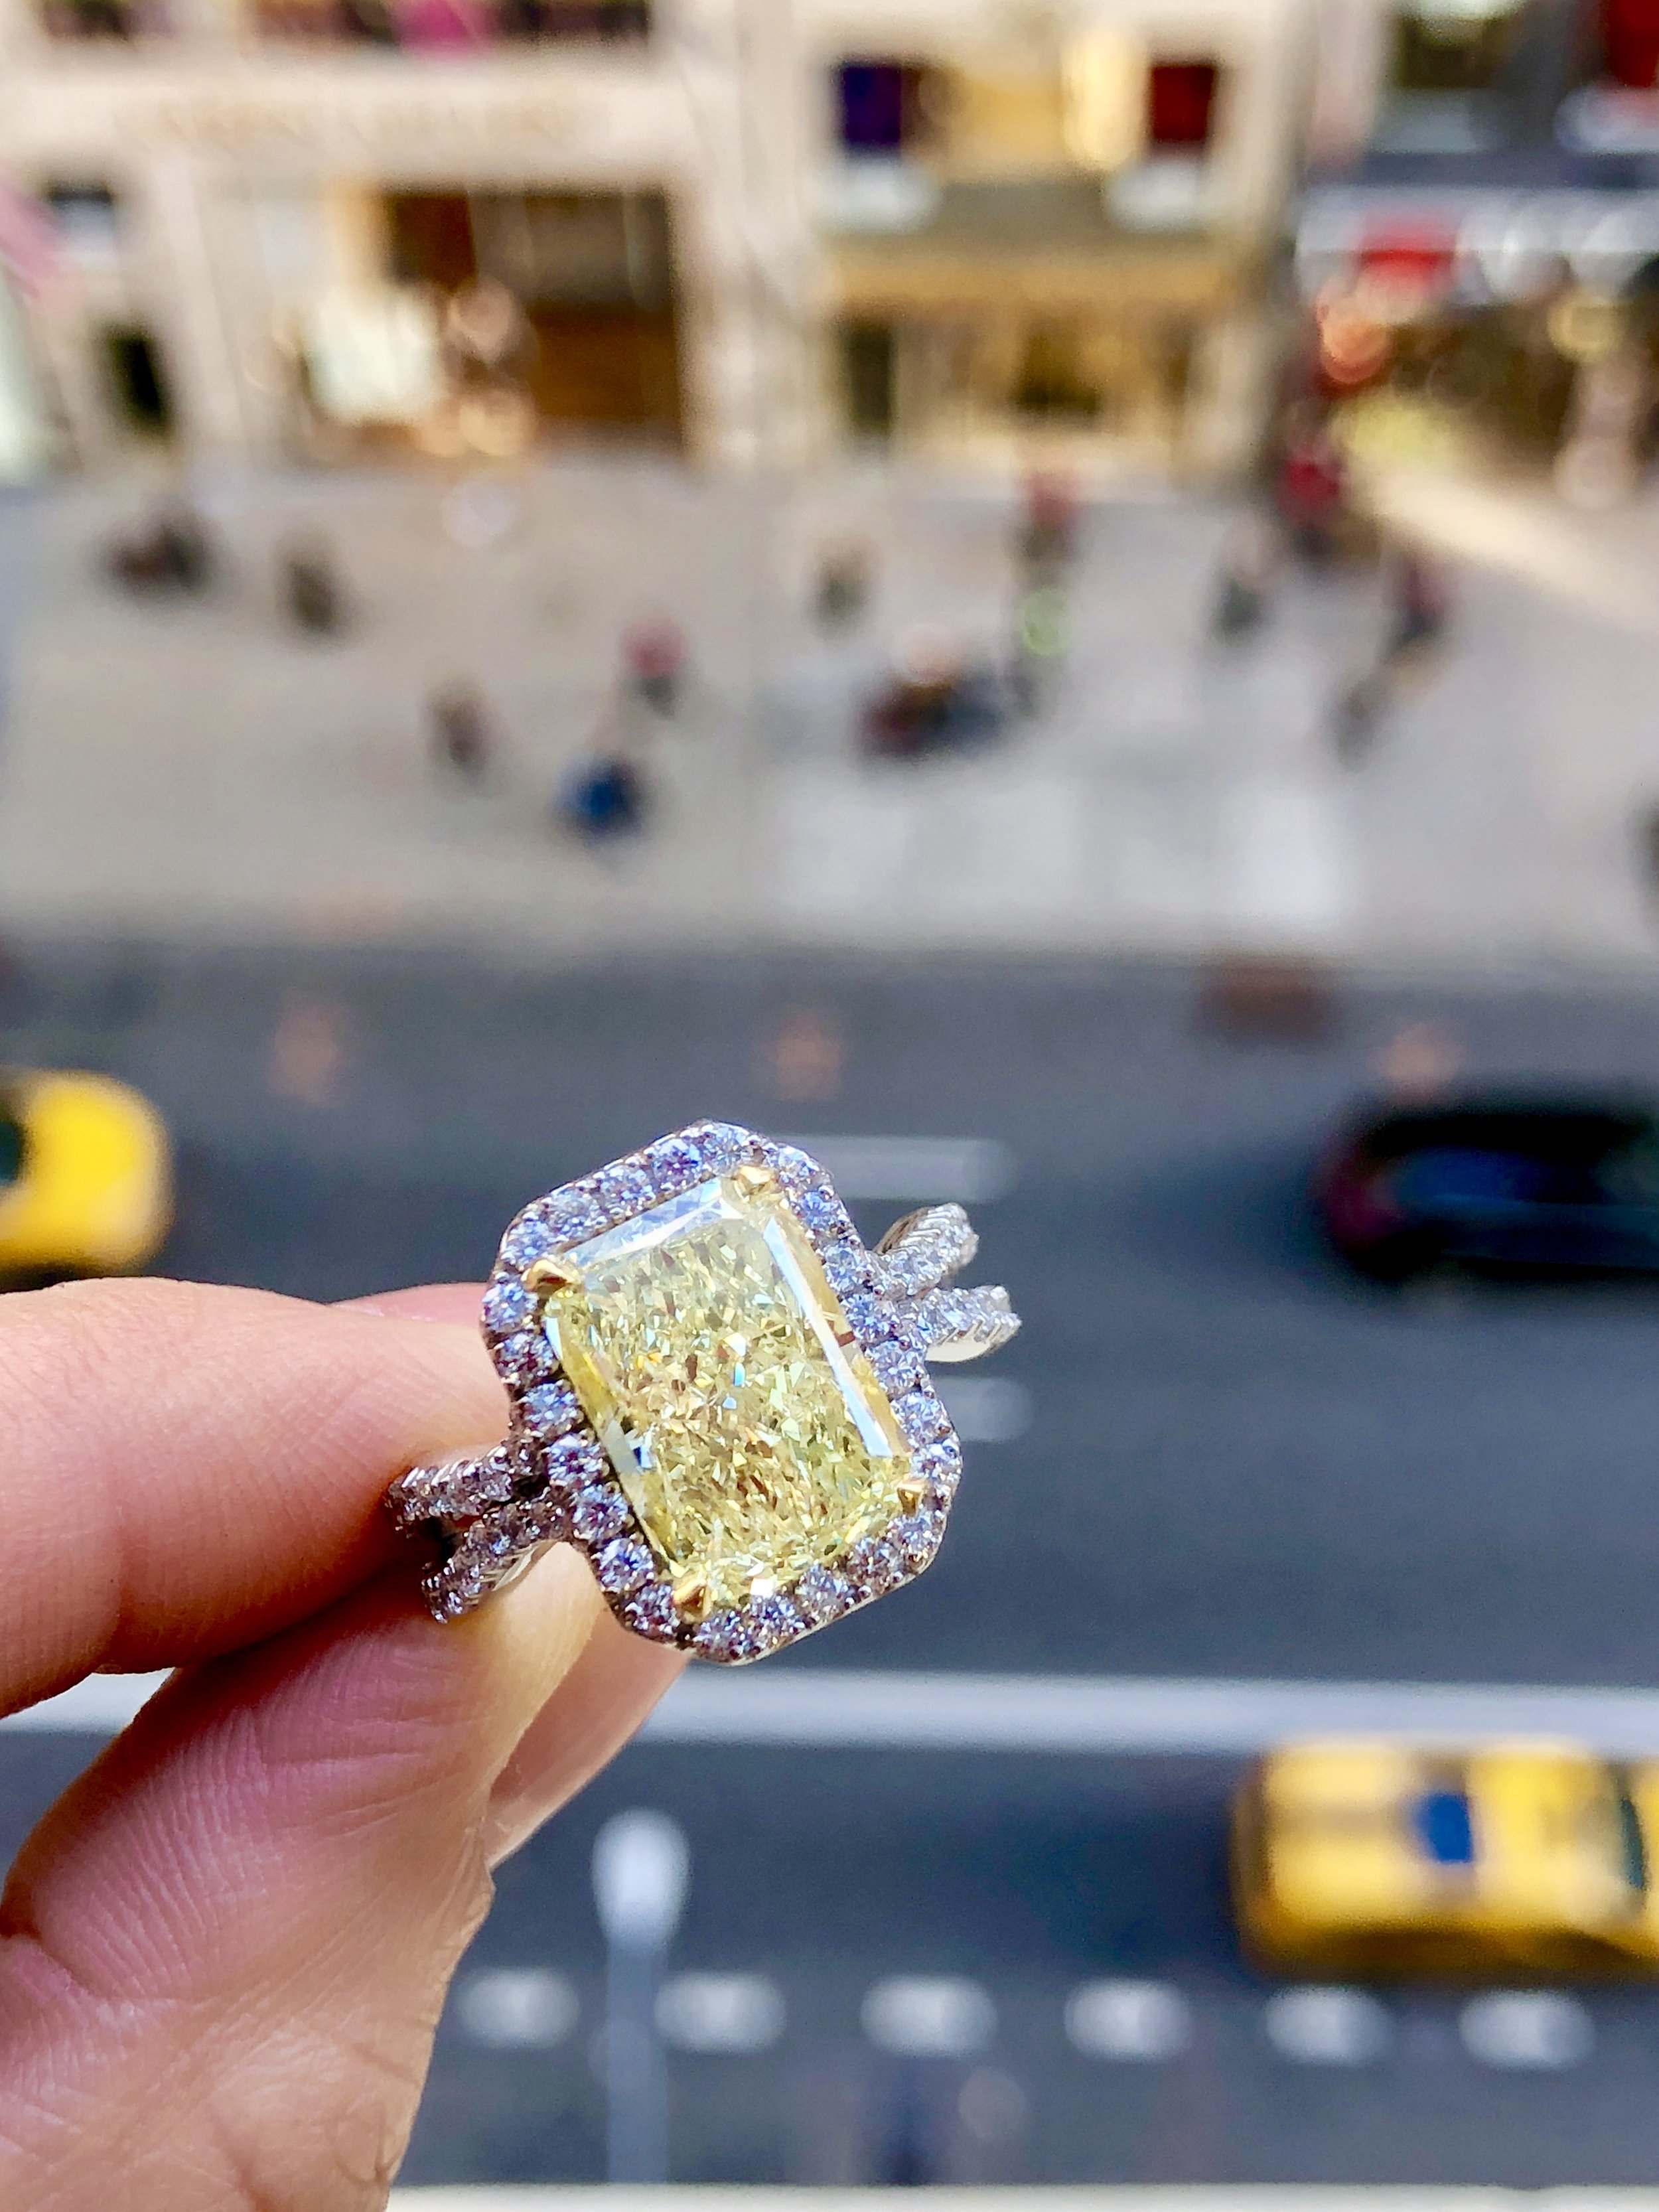 YELLOWA New York knockout. Bring out the bold sparkle with this elegantly elongated, and stunning yellow diamond masterpiece. -